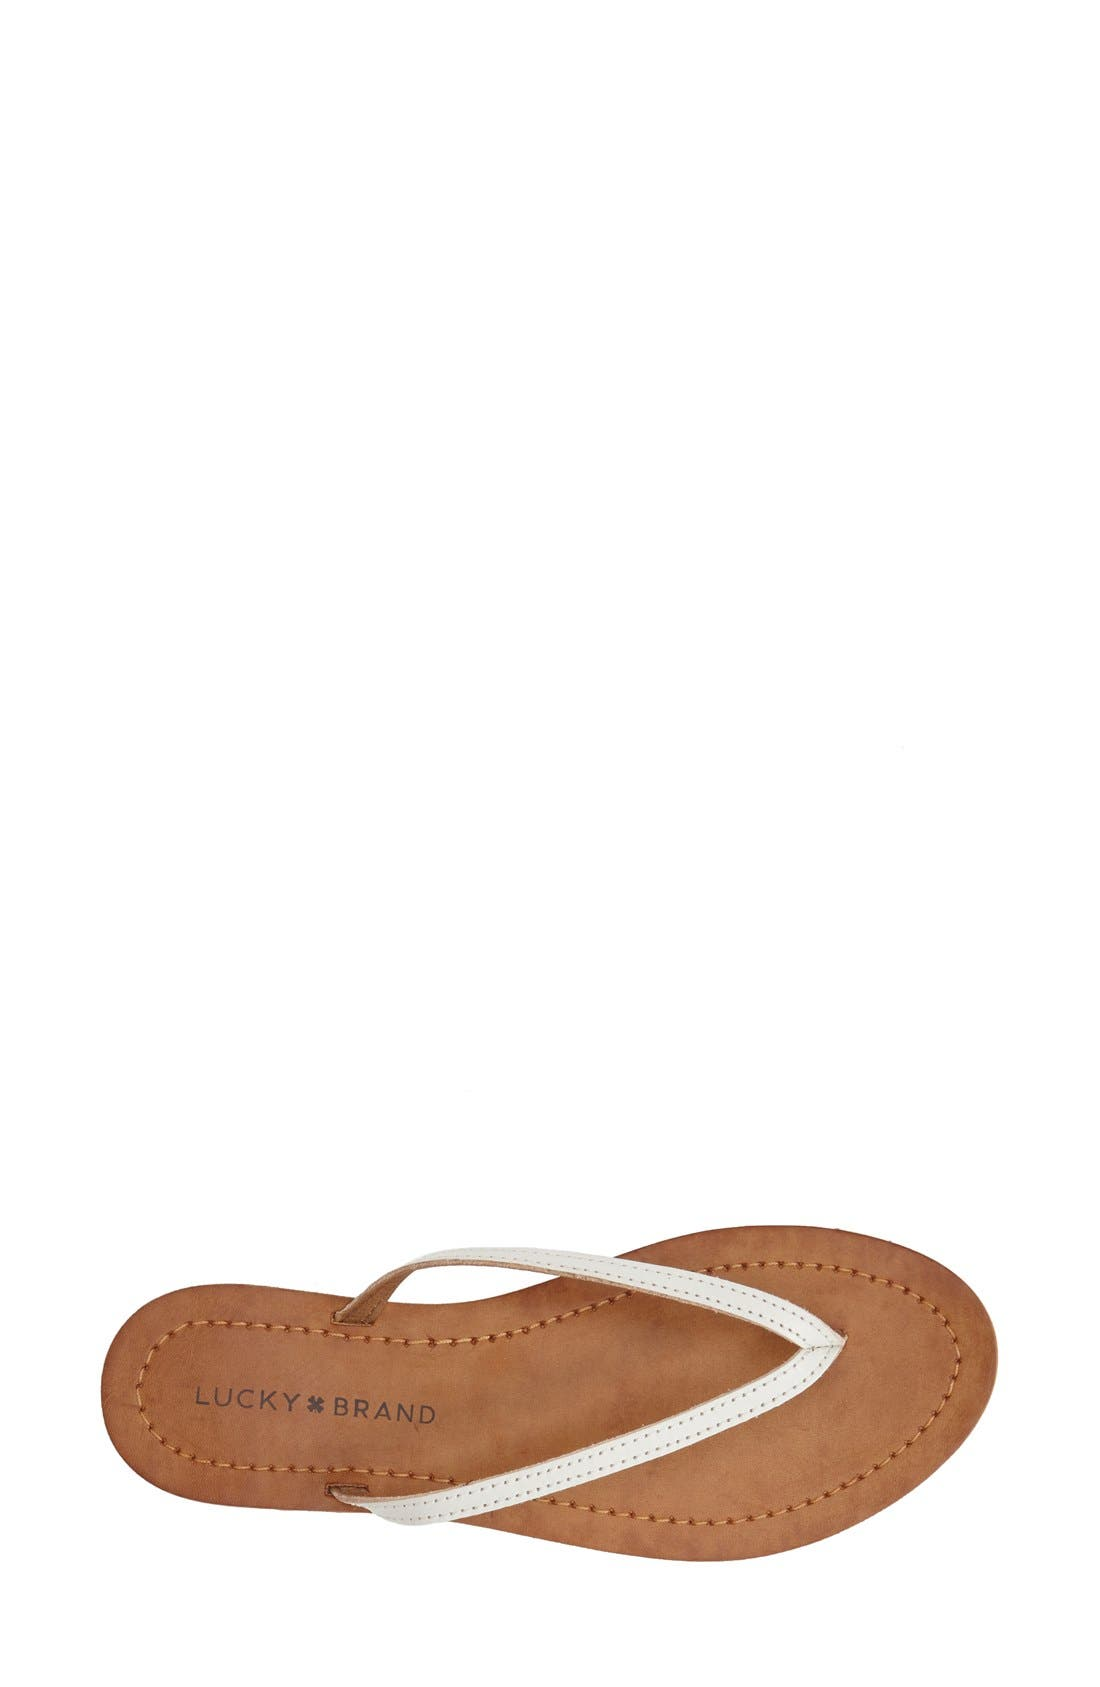 Alternate Image 3  - Lucky Brand 'Amberr' Leather Thong Sandal (Women)